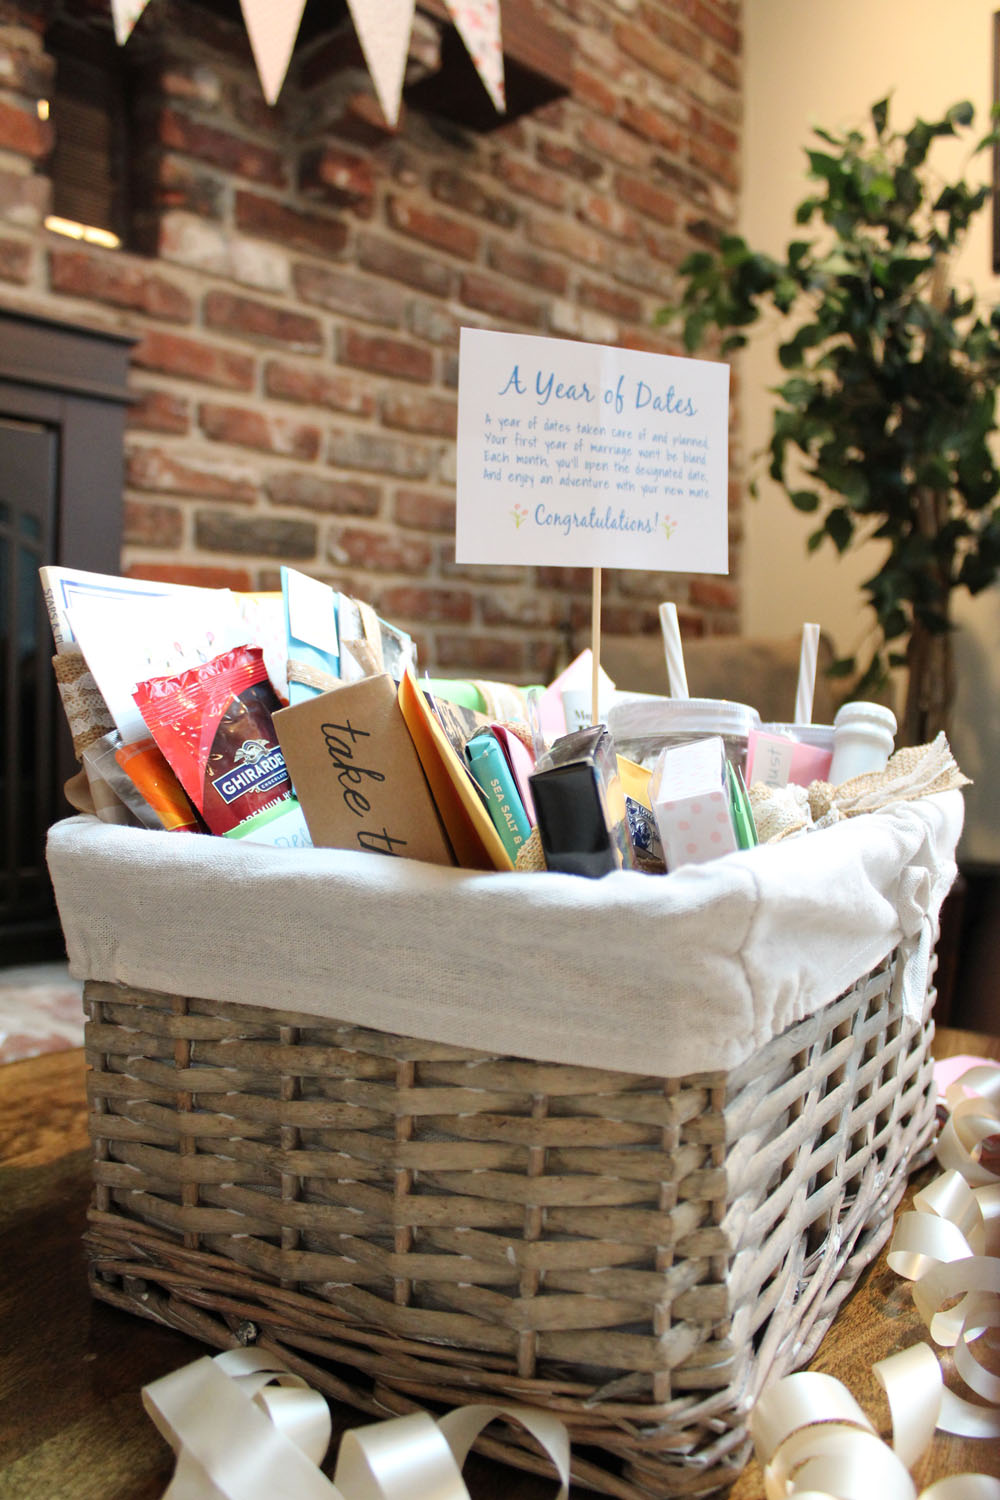 DIY 12 Months of Dates Gift Basket - Perfect gift for showers, weddings, and significant others